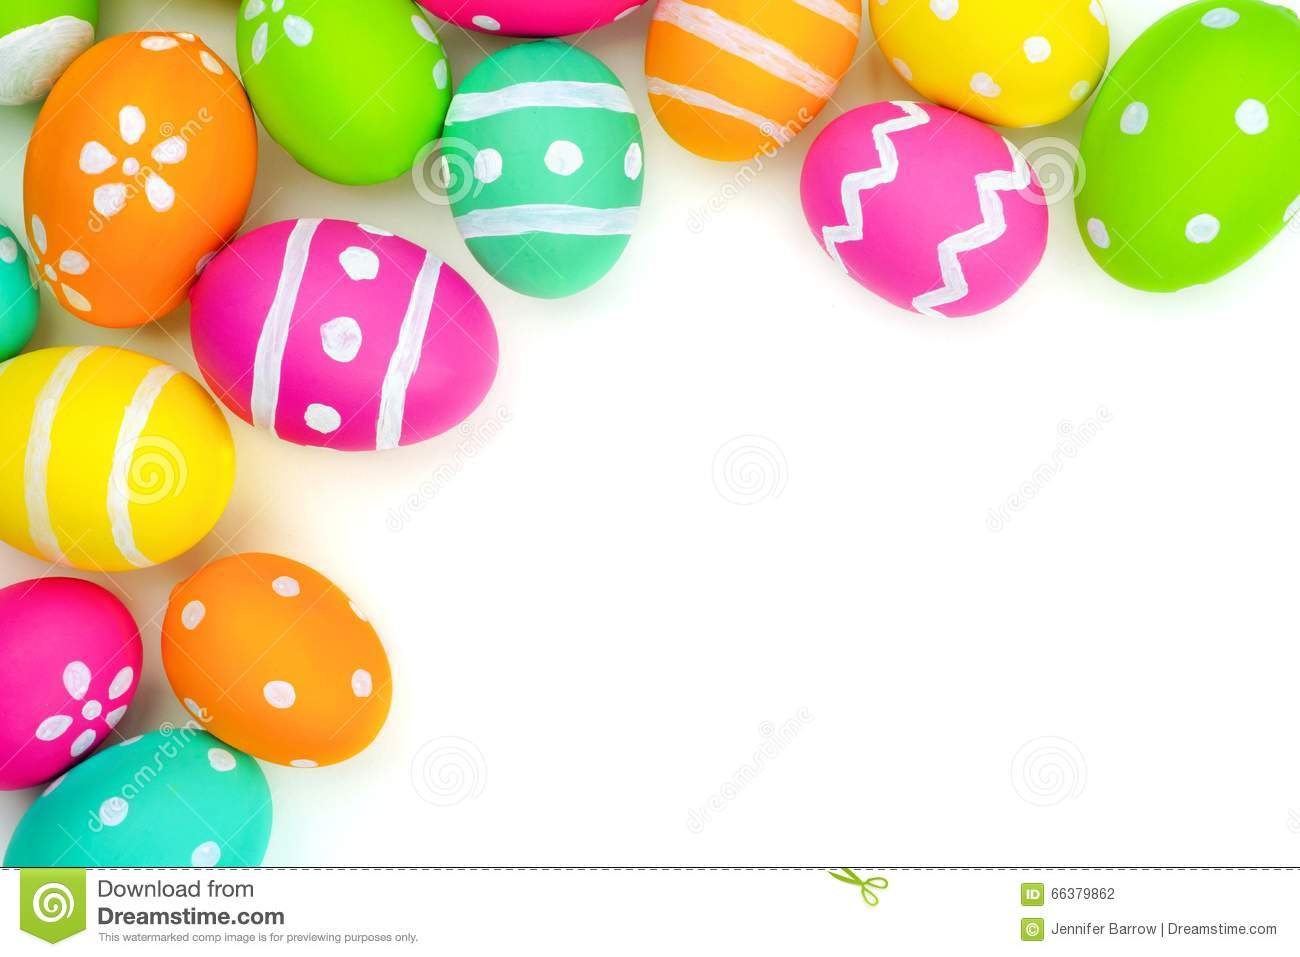 Easter egg corner clipart svg transparent download Easter egg corner clipart - ClipartFest svg transparent download